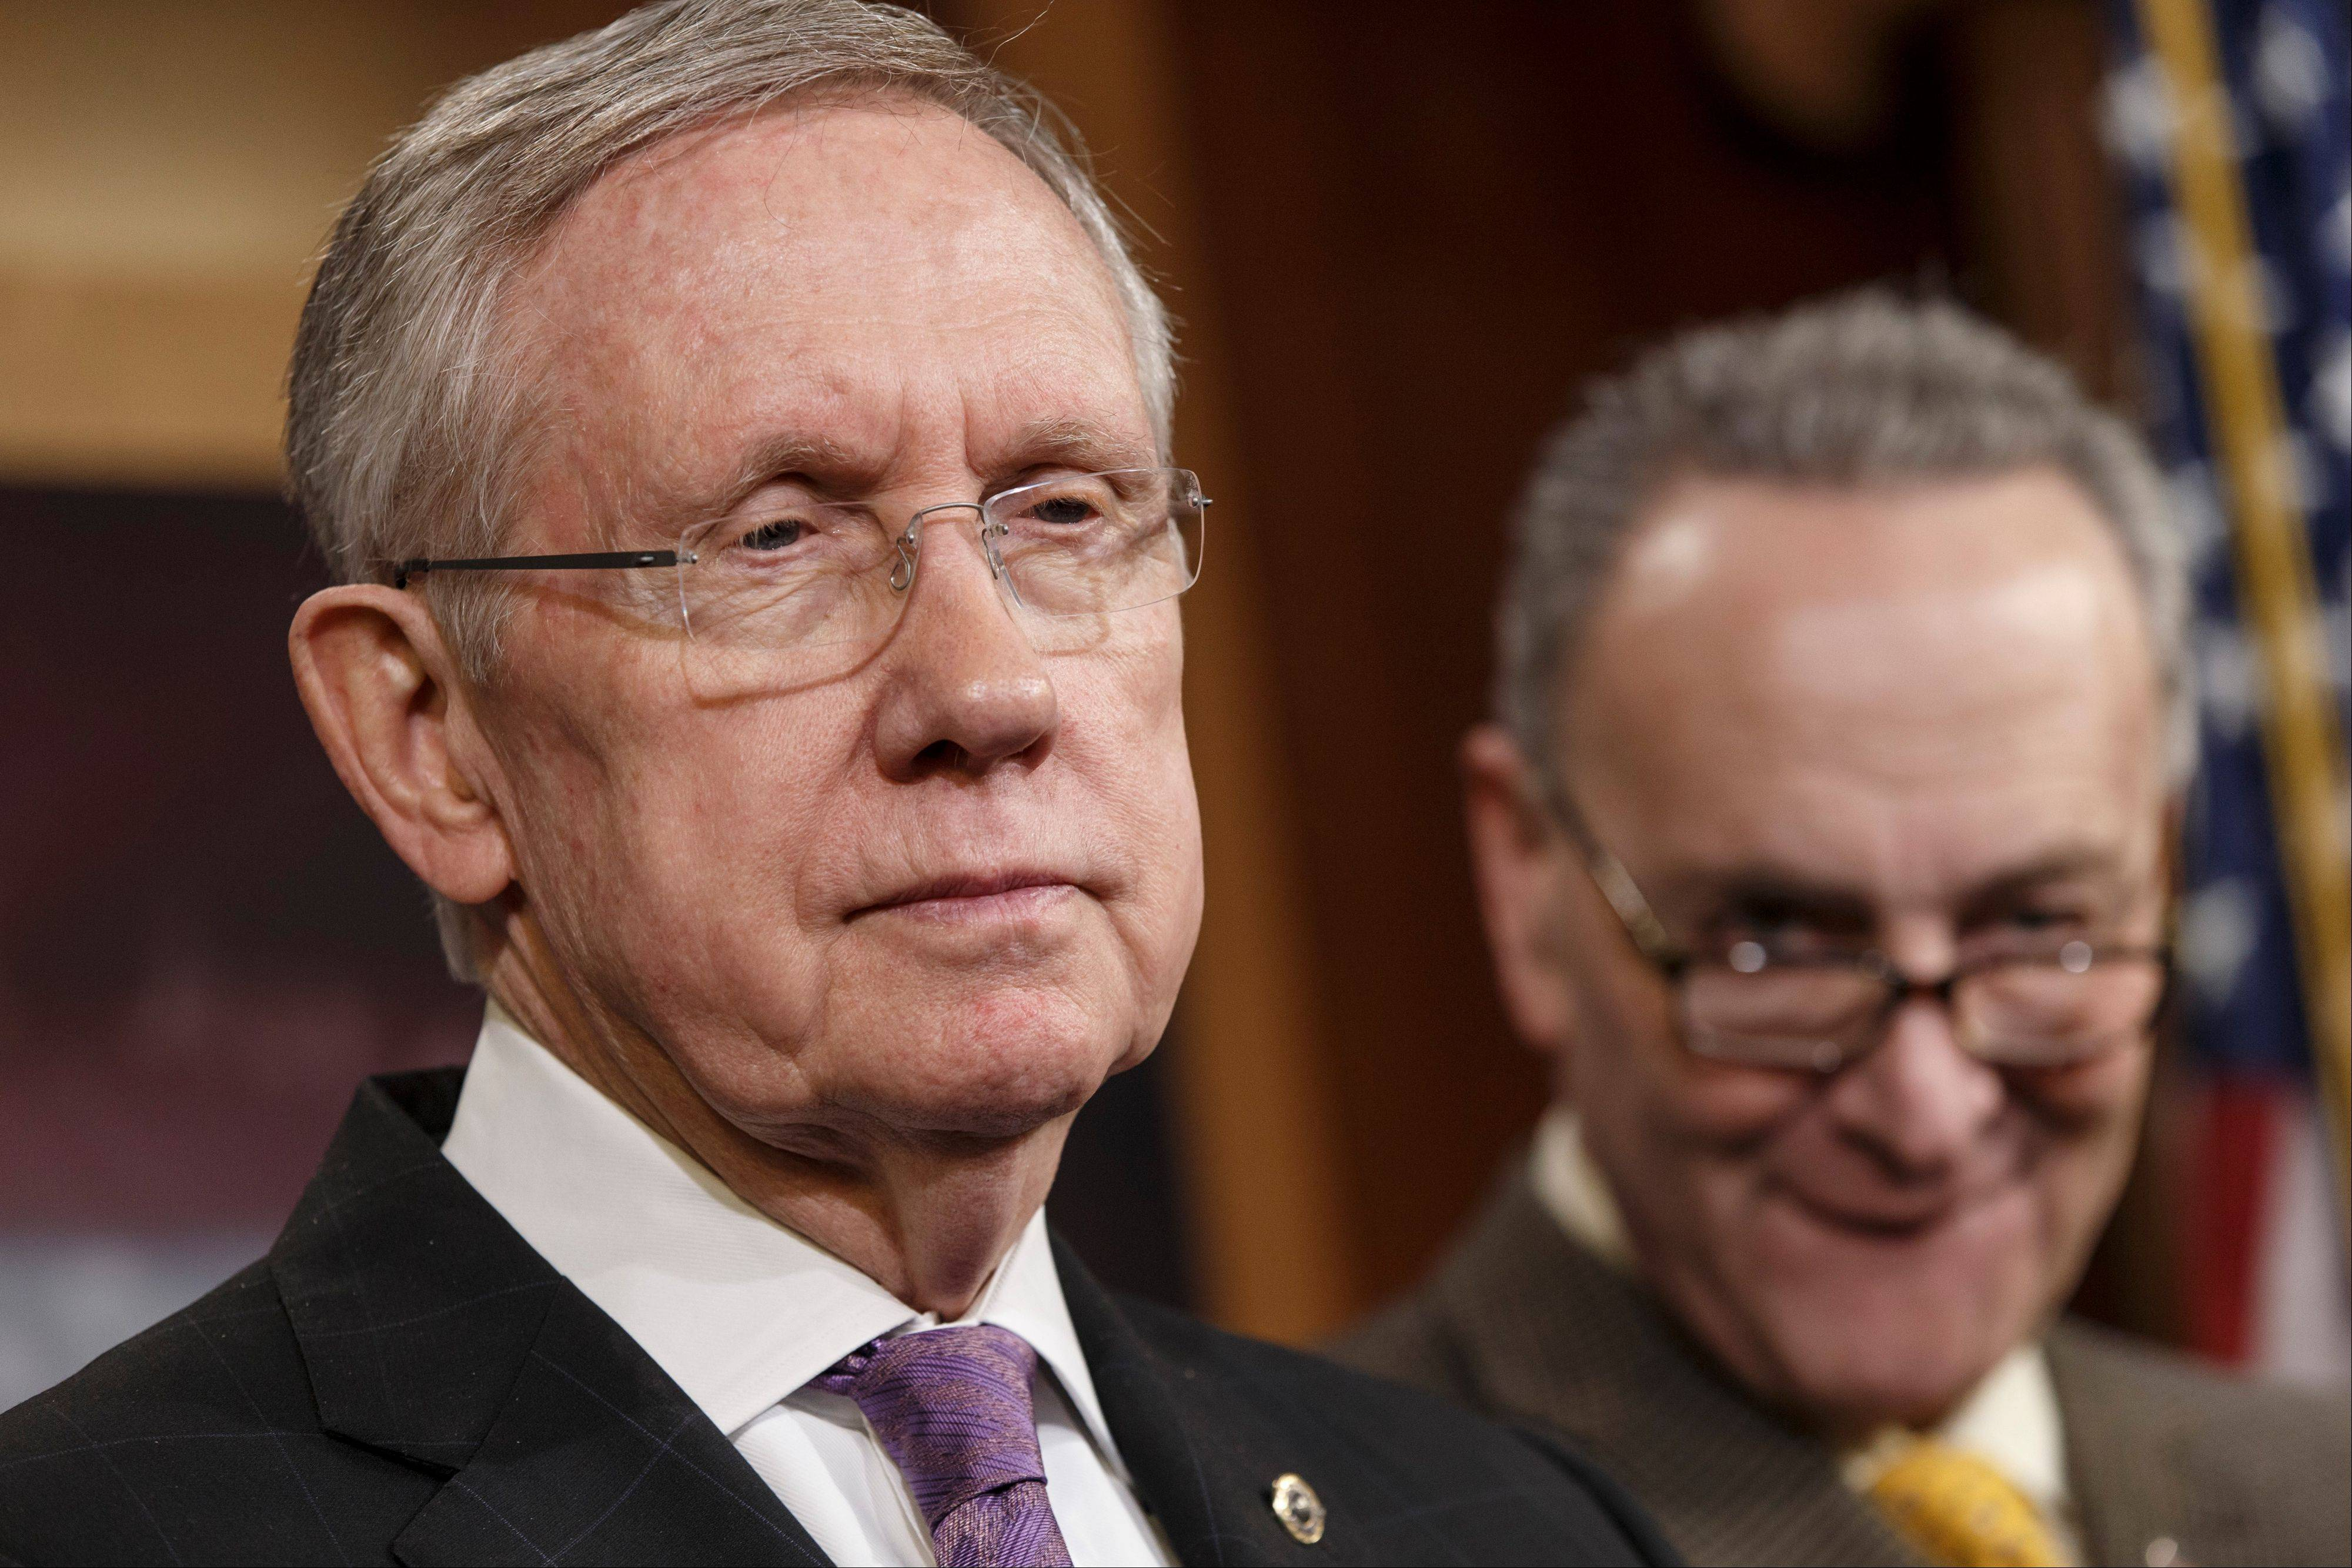 Nevada Democratic Senate Majority Leader Harry Reid with Sen. Chuck Schumer, D-N.Y. on Thursday. Reid, 74, was still hospitalized early Friday after feeling unwell as the Senate was winding through its final hours.